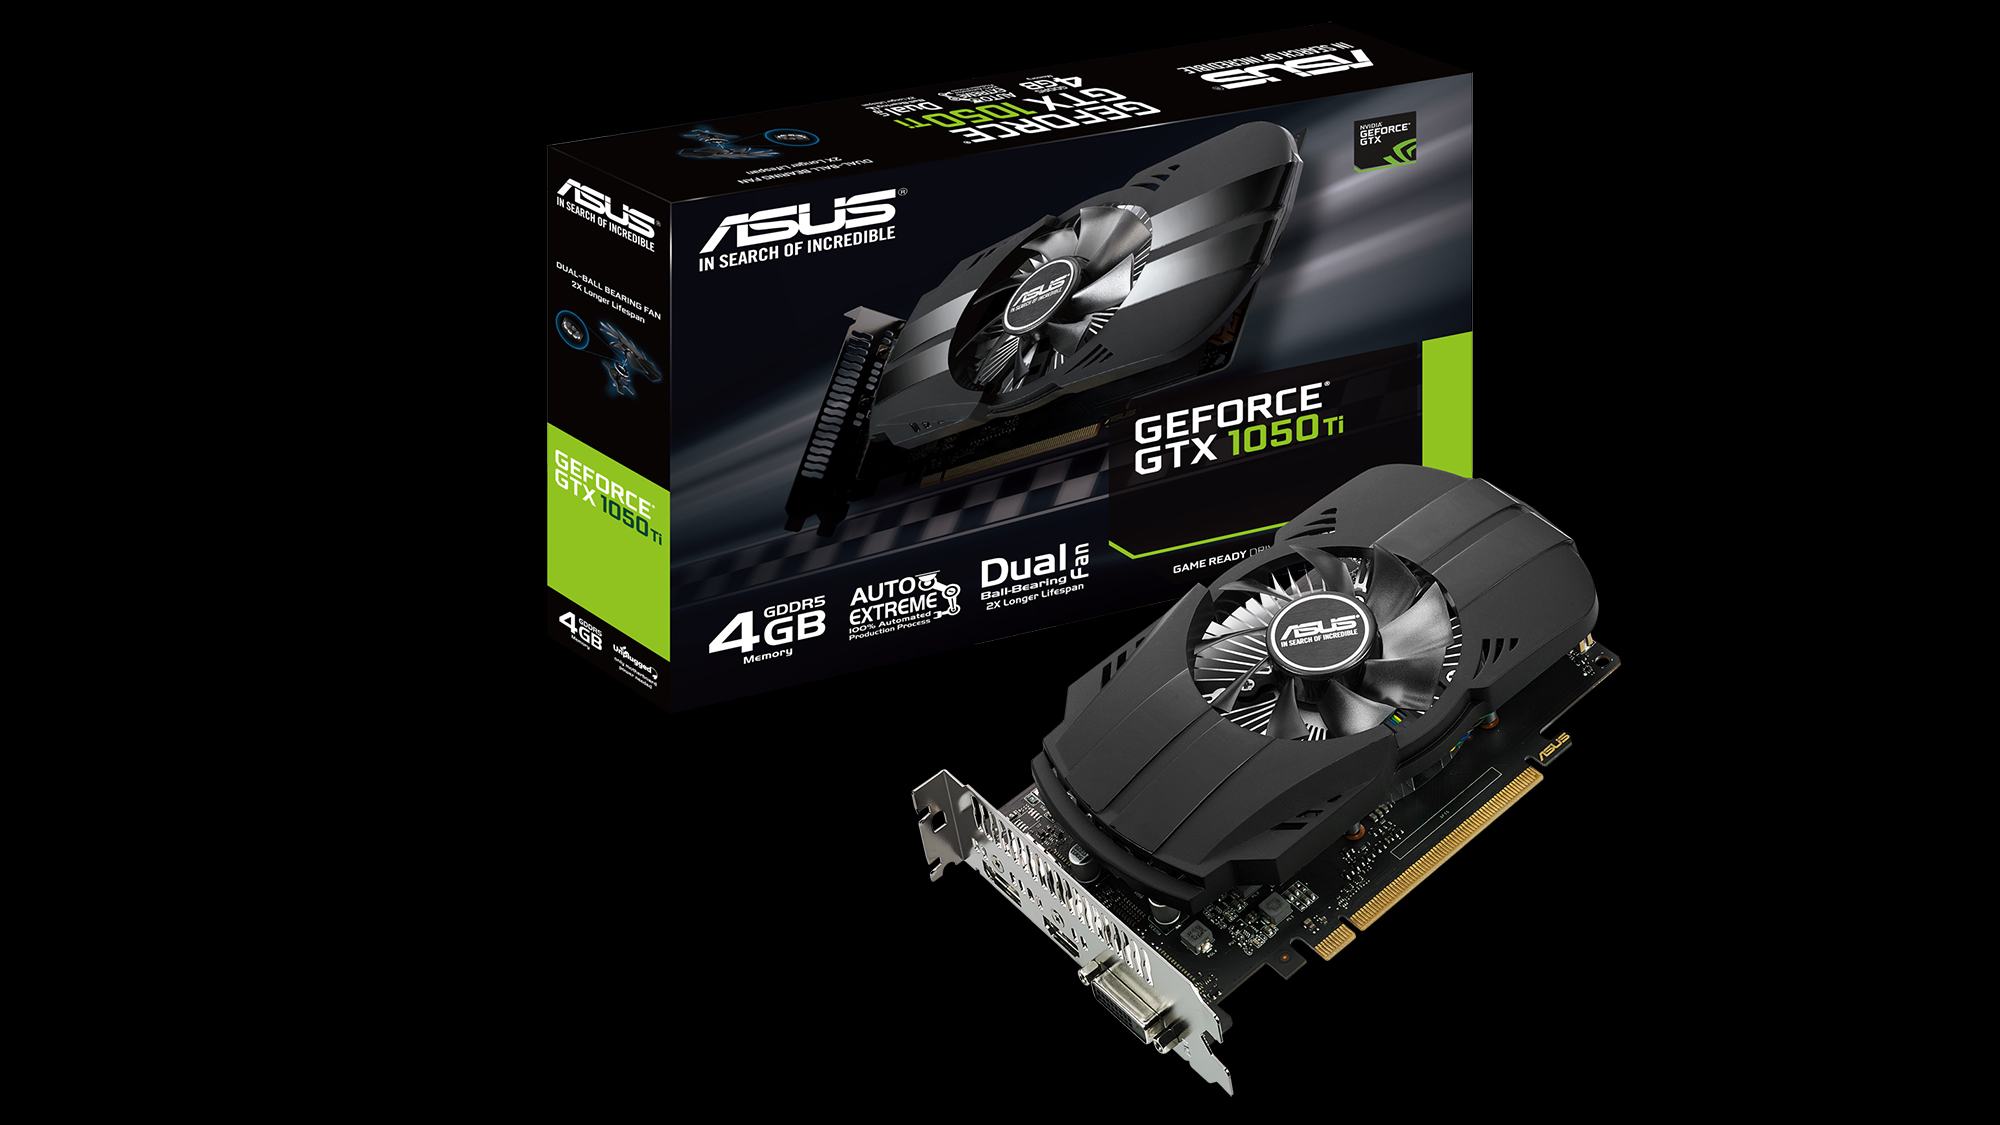 Asus Announces Latest Line Up Of Graphics Cards Powered By Nvidia Inno 3d Gtx 1050ti 4gb Ddr5 Compact Ph Gtx1050ti 4g 2000x1125